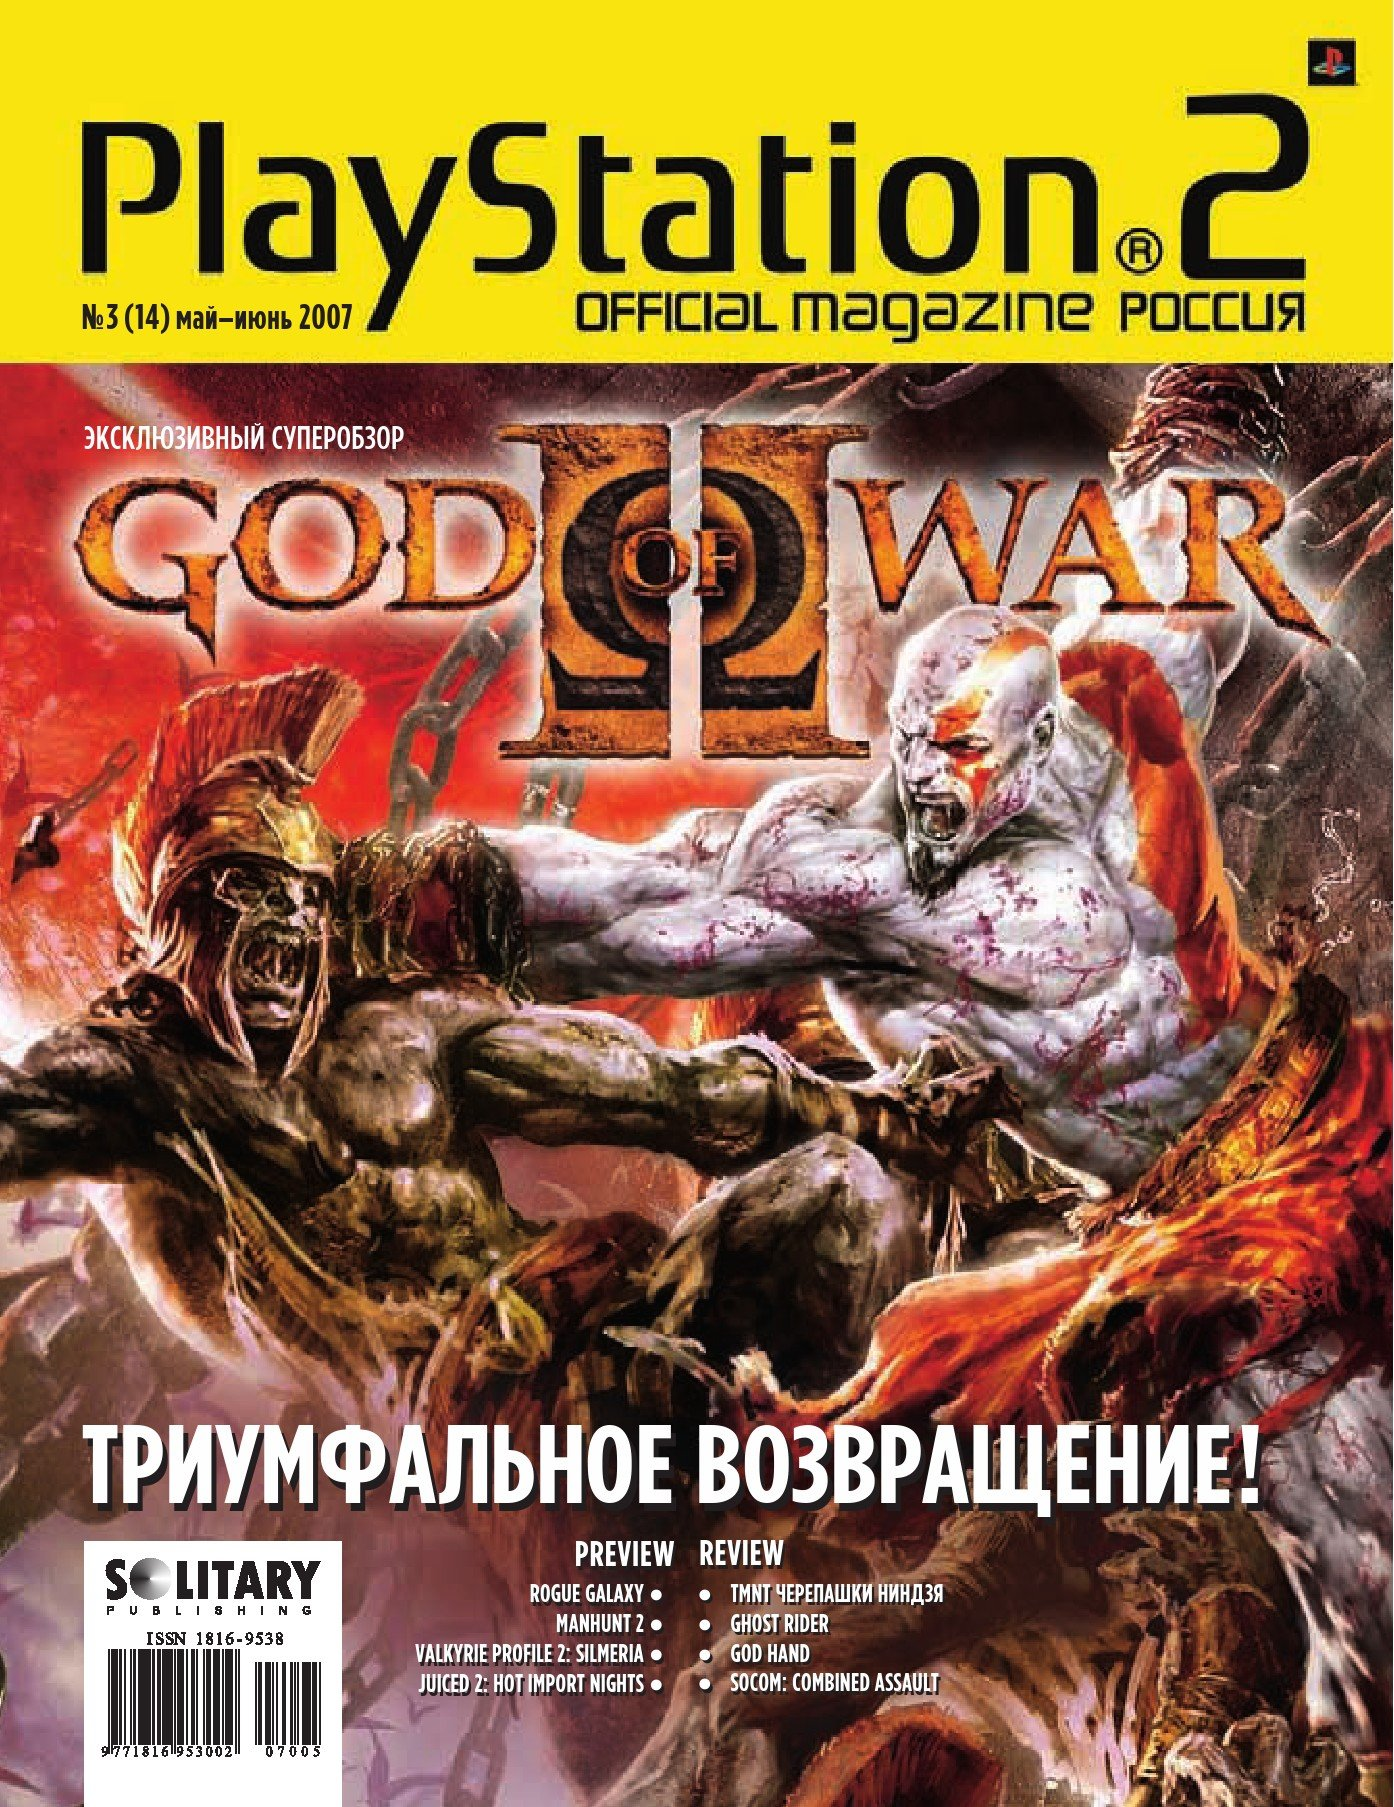 Playstation 2 Official Magazine (Russia) Issue 14 - May/Jun. '07